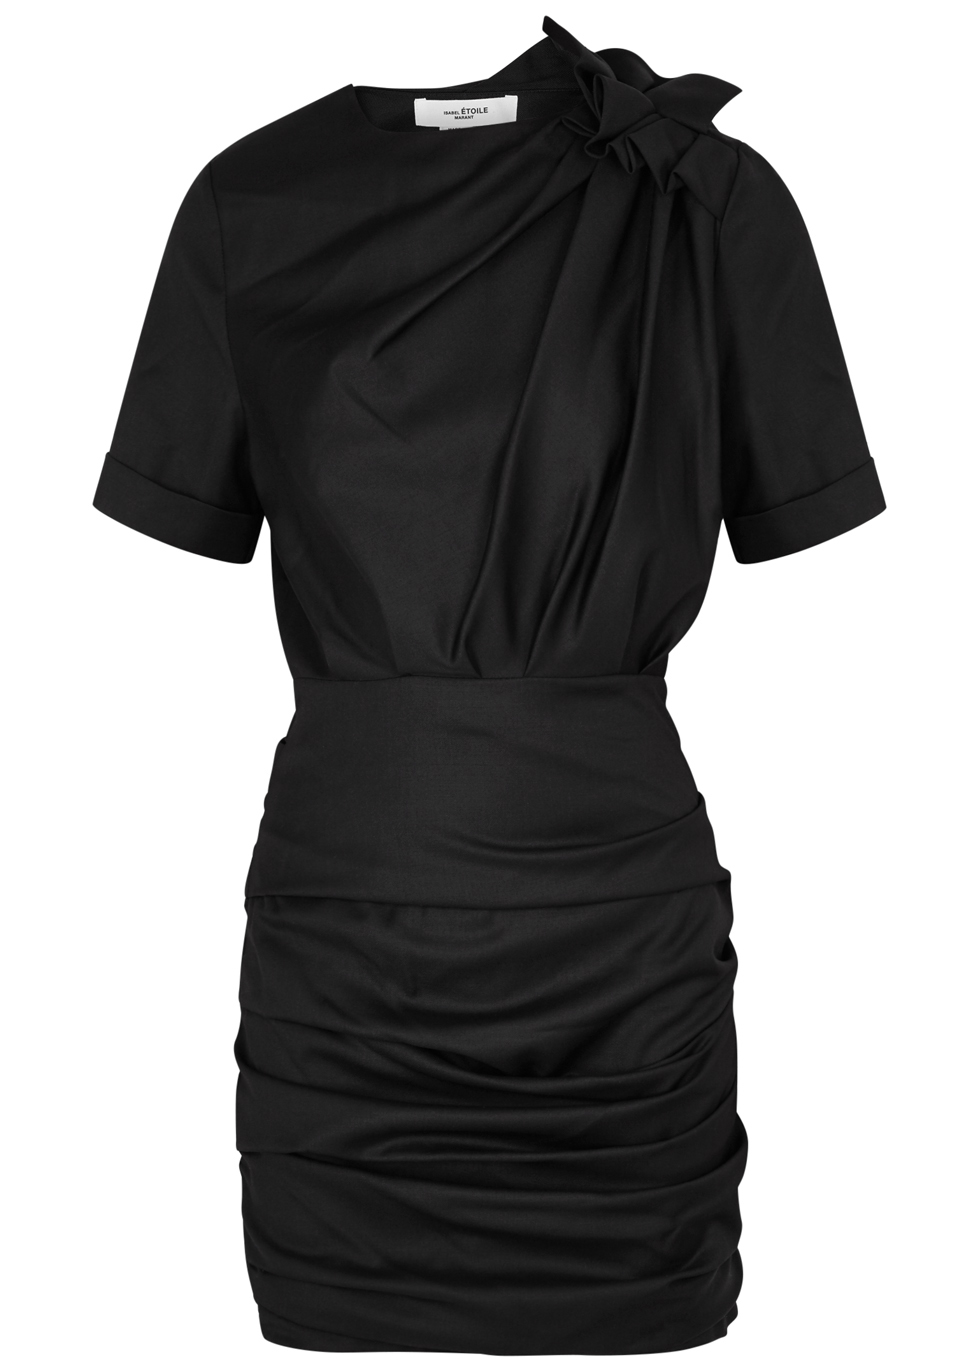 ETOILE ISABEL MARANT ORIA BLACK RUCHED TWILL DRESS